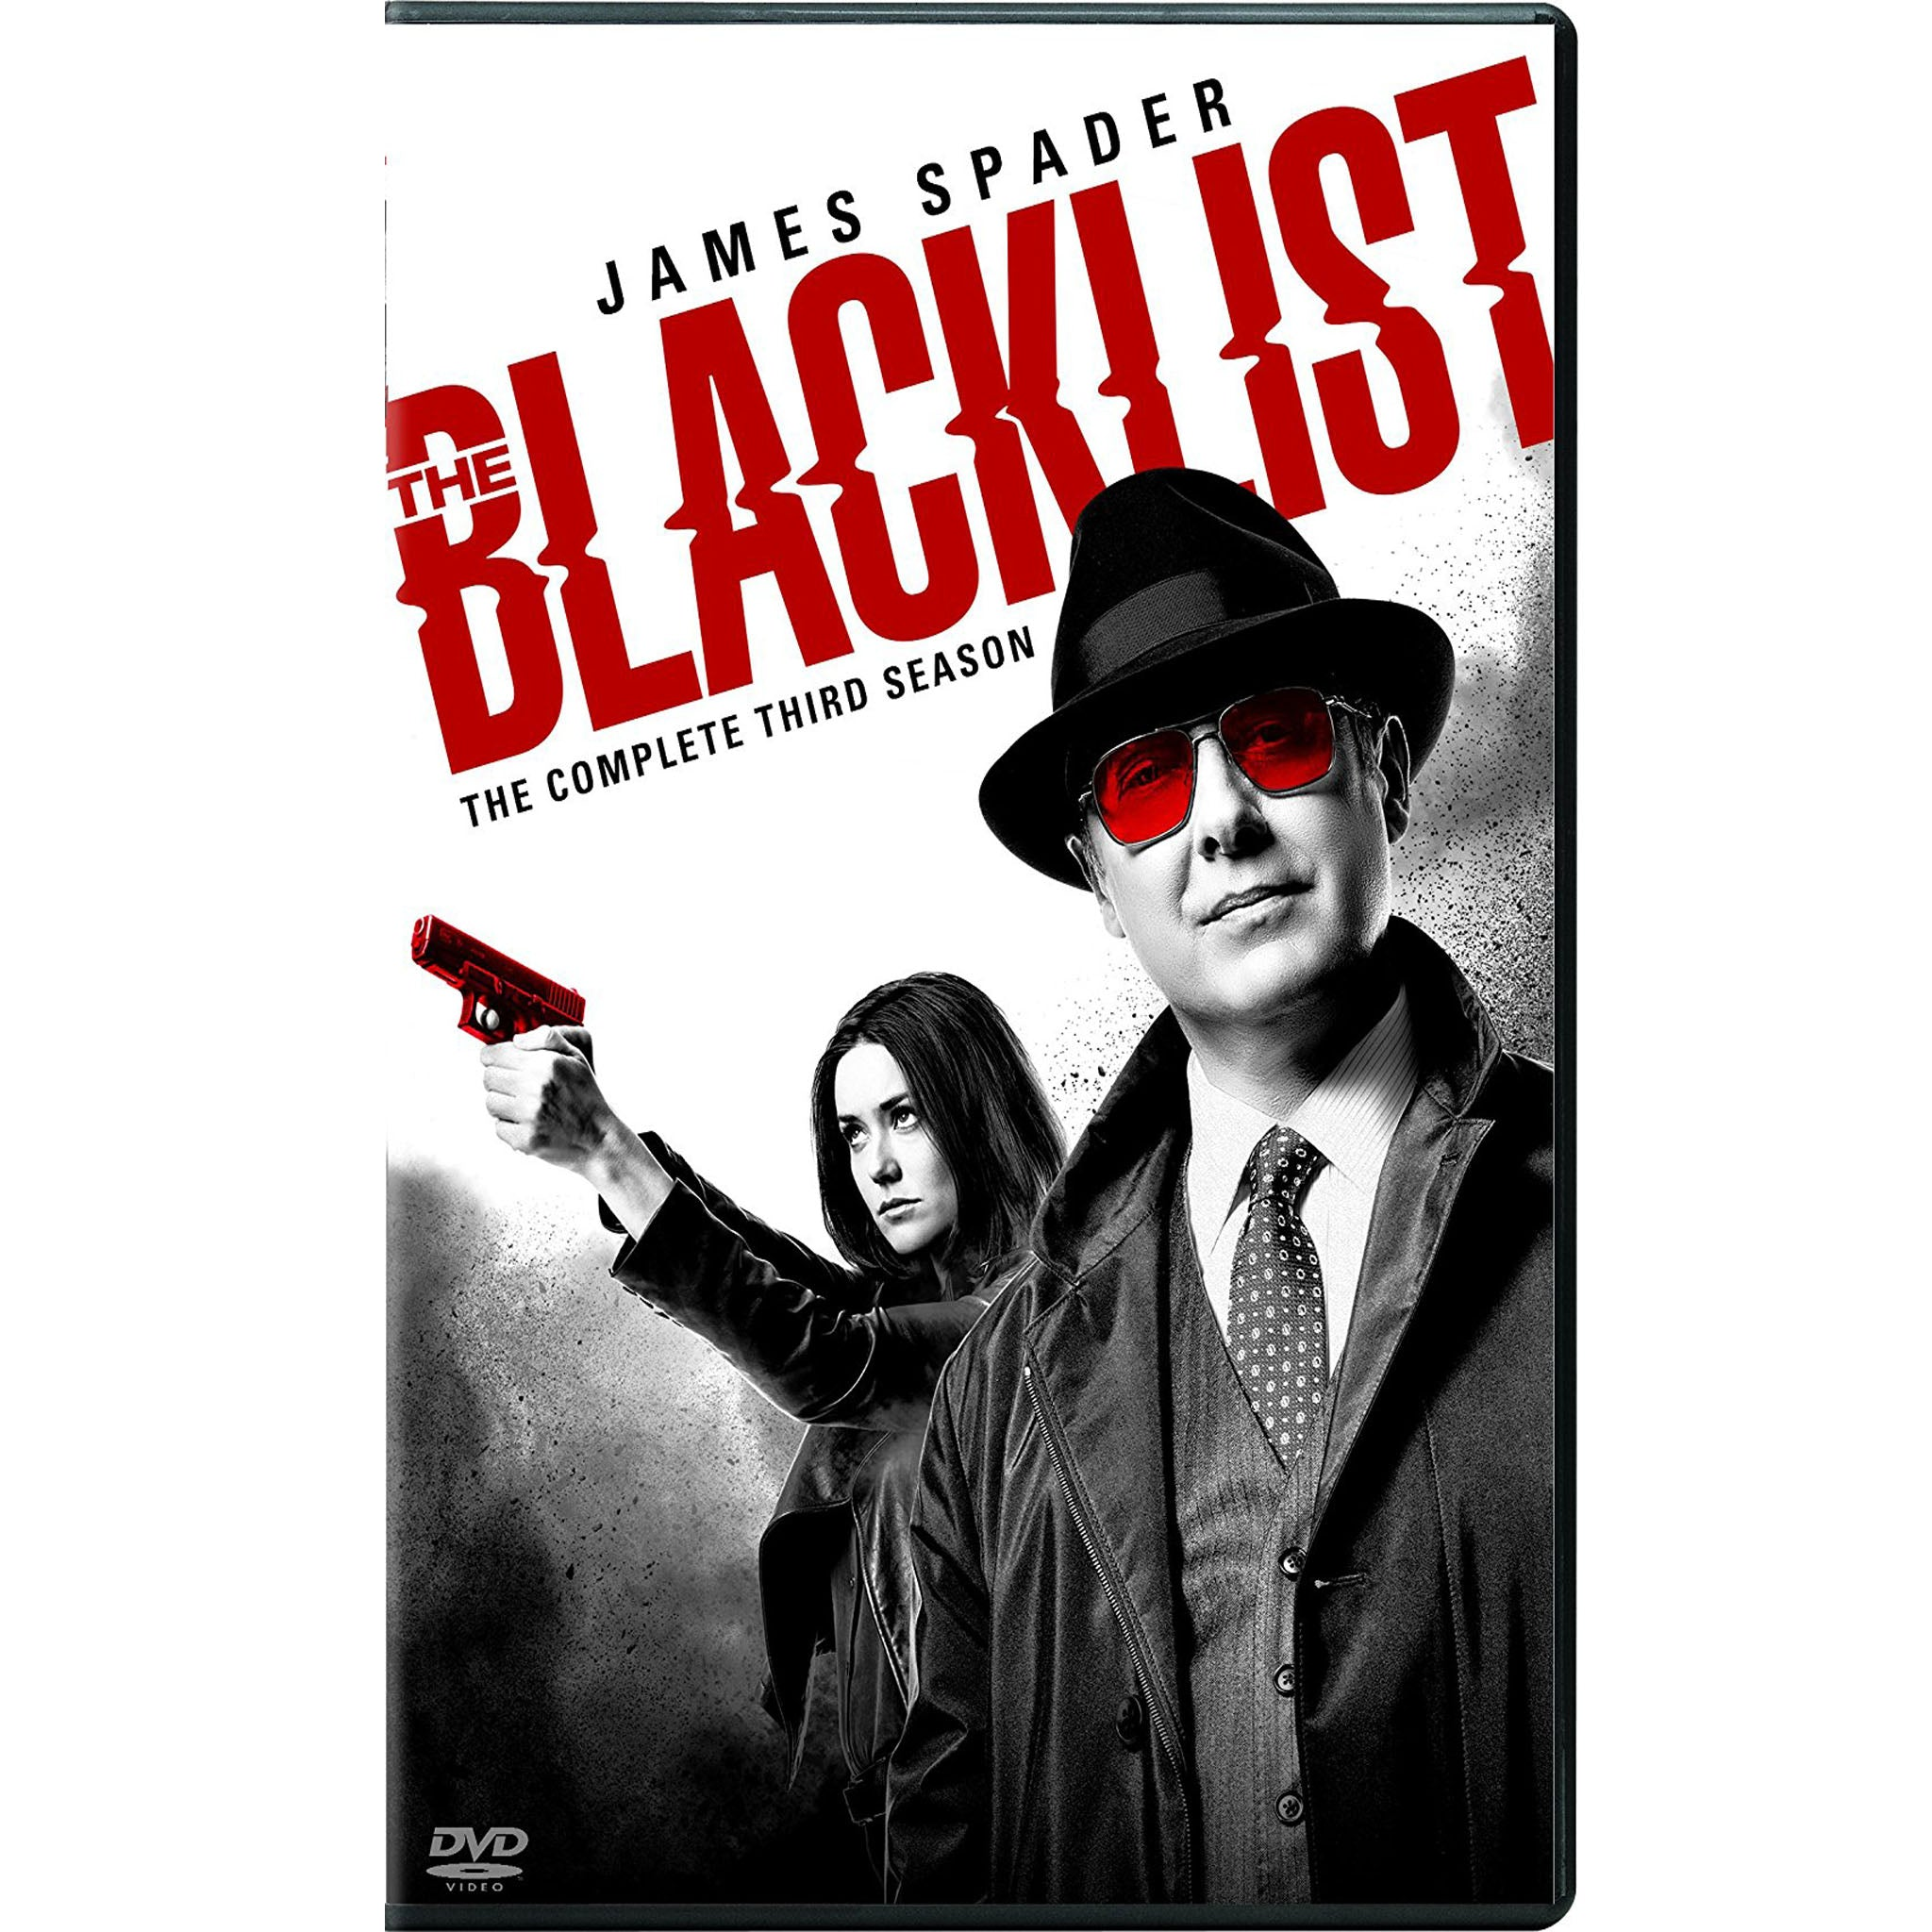 The Blacklist: Season 3 (DVD) - DVDsHQ